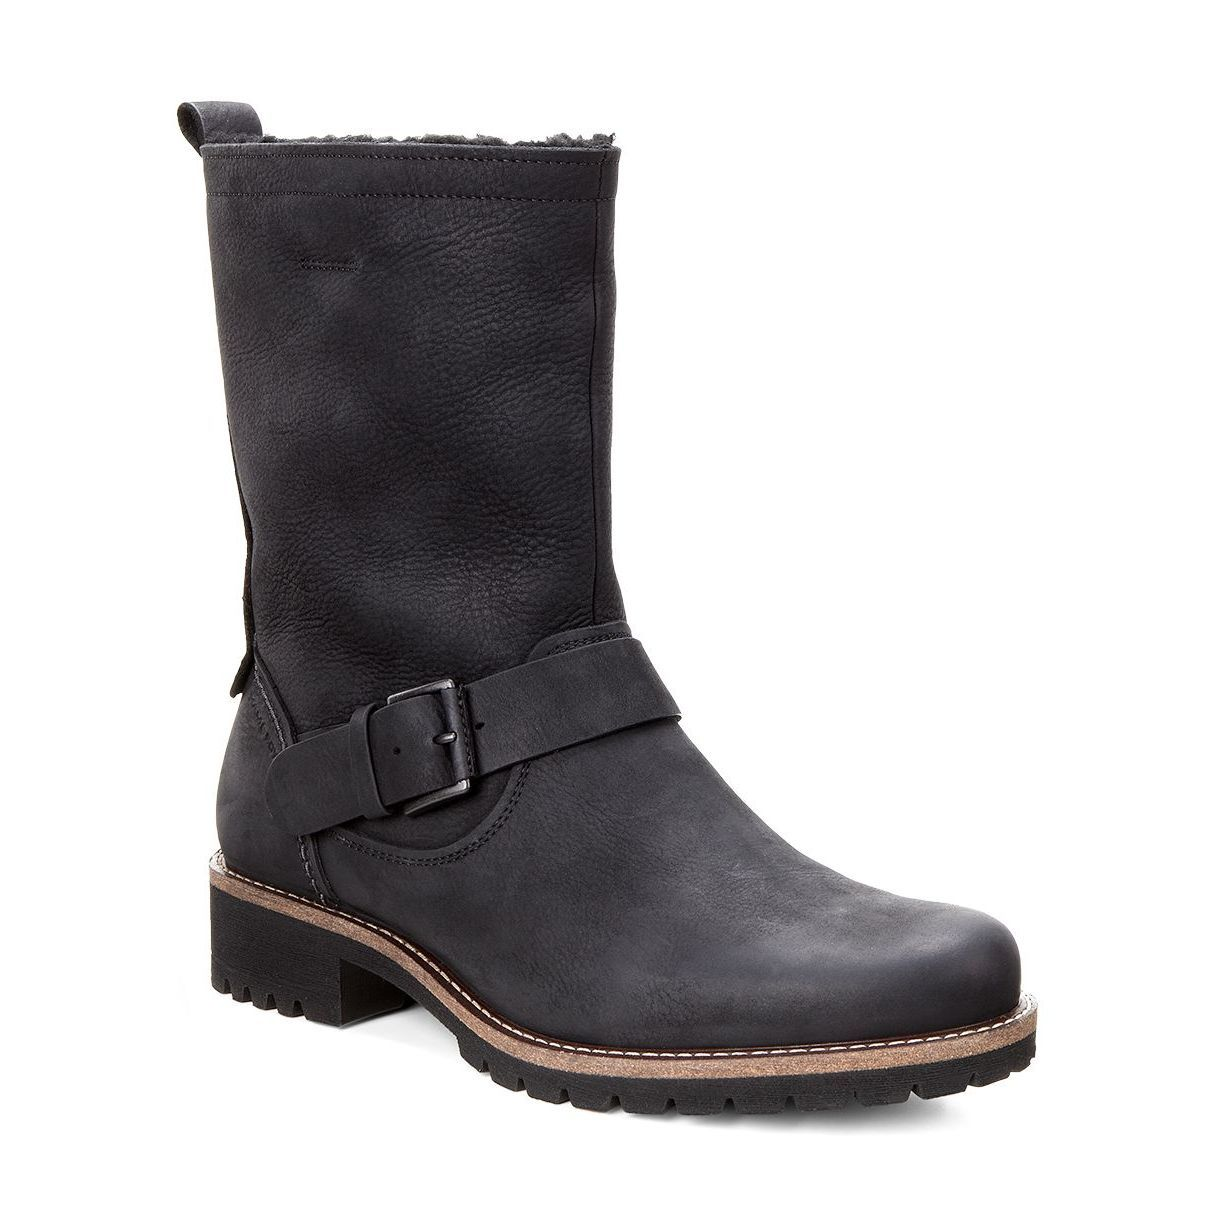 half off 100% quality quarantee wide selection of colors ECCO Elaine Boot 24464302001 BLACK - Women's Casual Boots ...